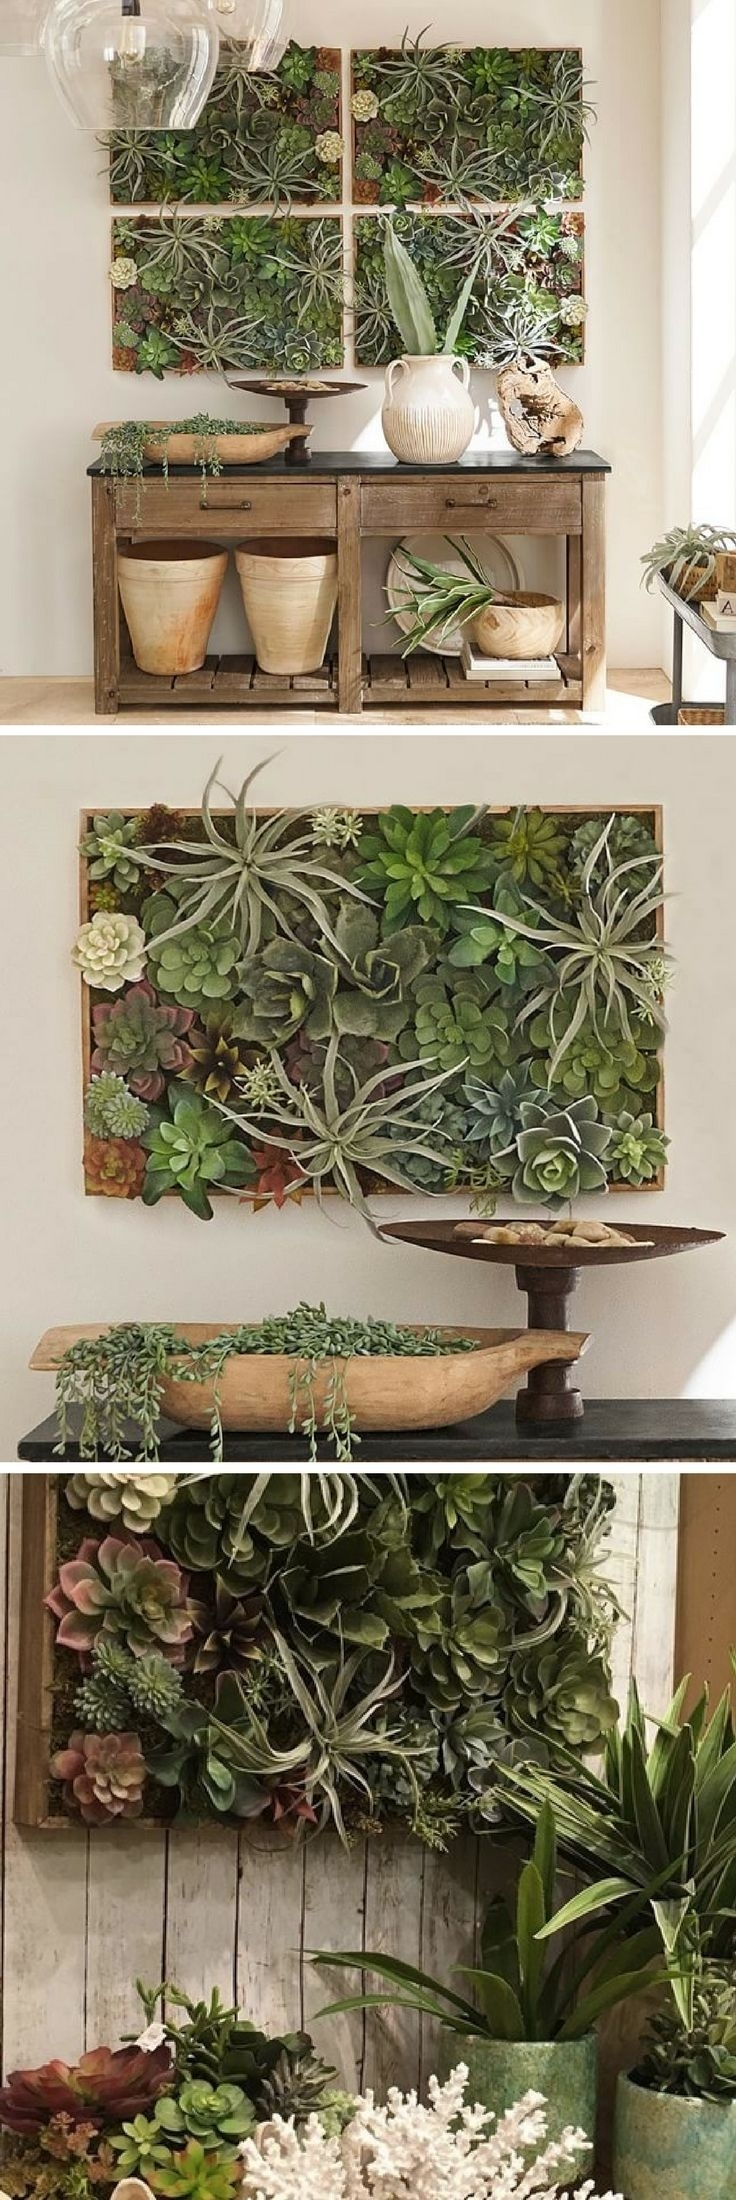 Succulent Wall | Planter | Wall Art | Faux Plants | Ad | Kitchen Regarding Most Up To Date Succulent Wall Art (View 18 of 20)